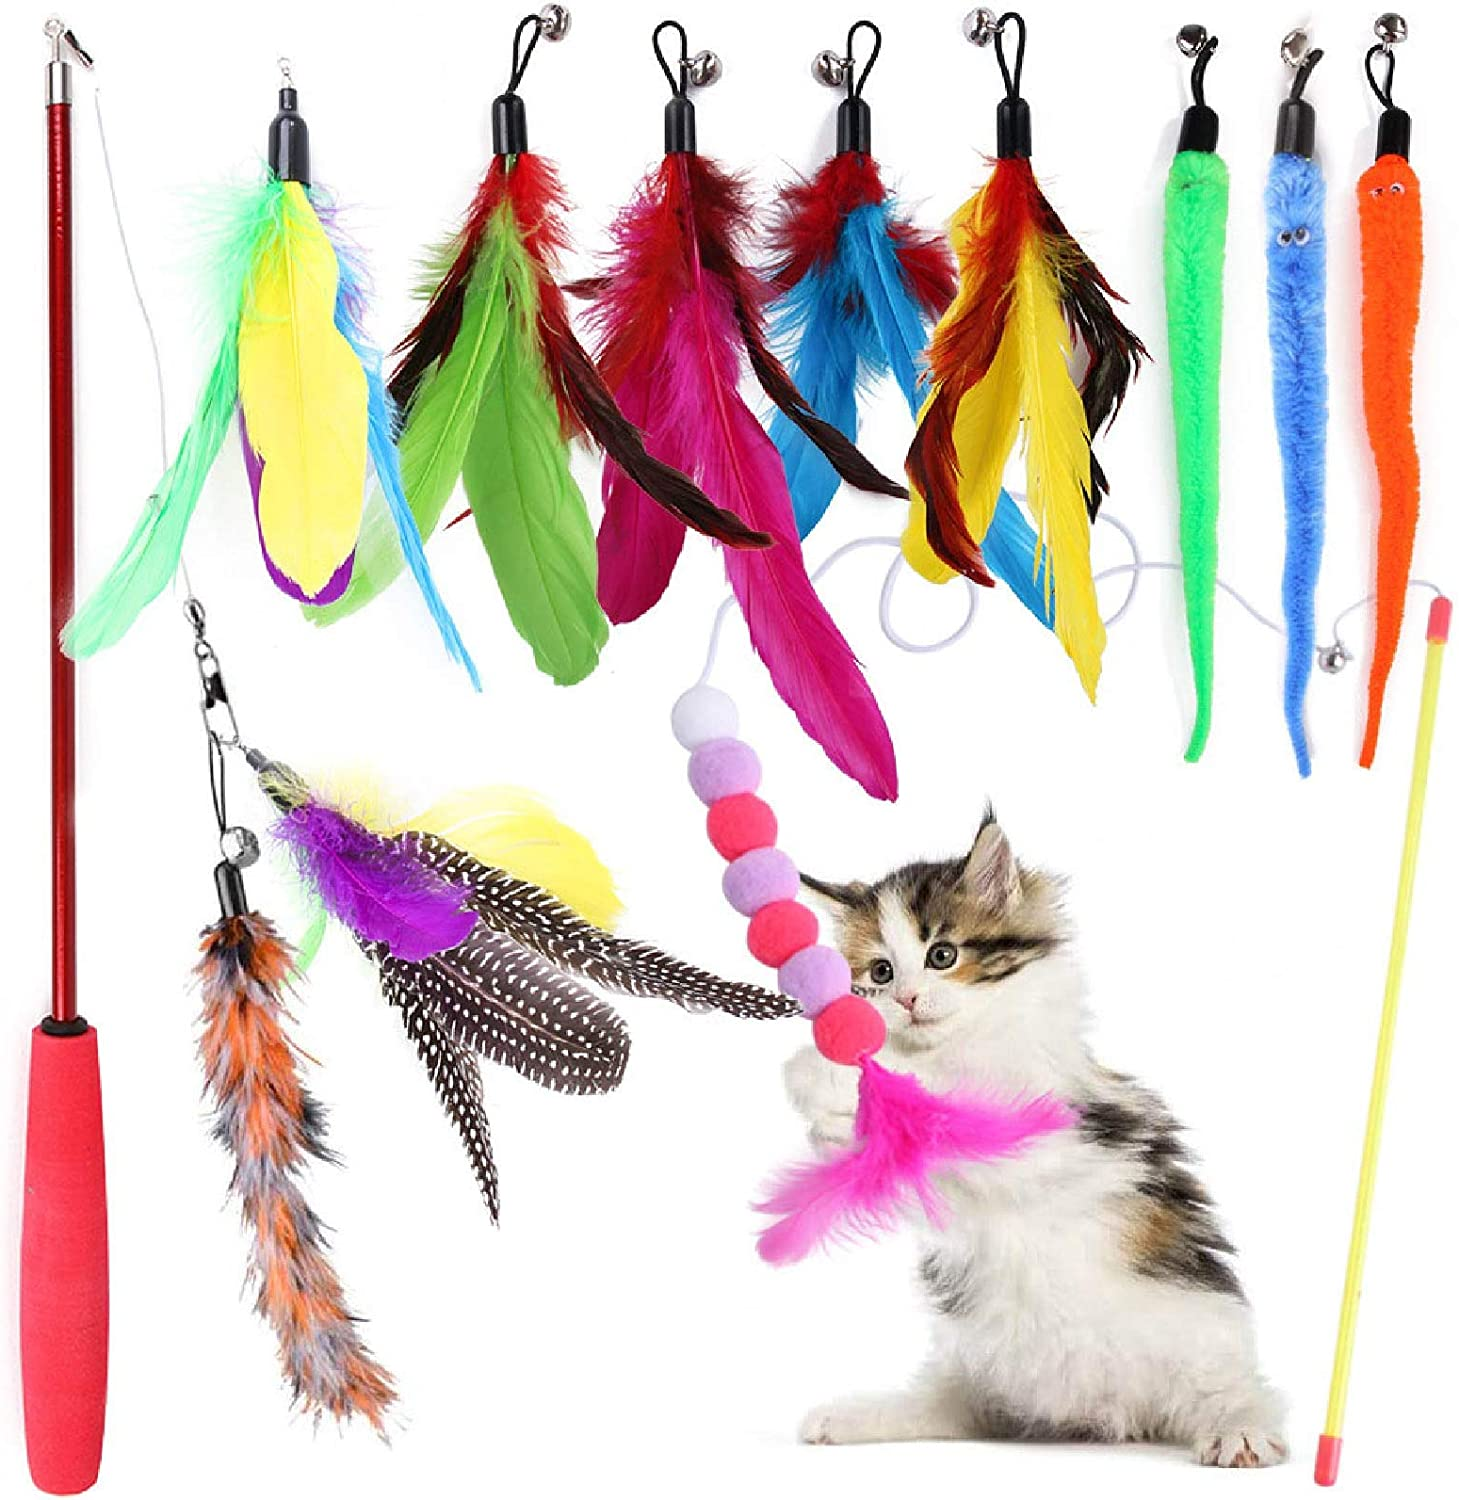 Egsyh Cat San Francisco Mall Toy Max 54% OFF Feather Set C Interactive 12Packs Retractable